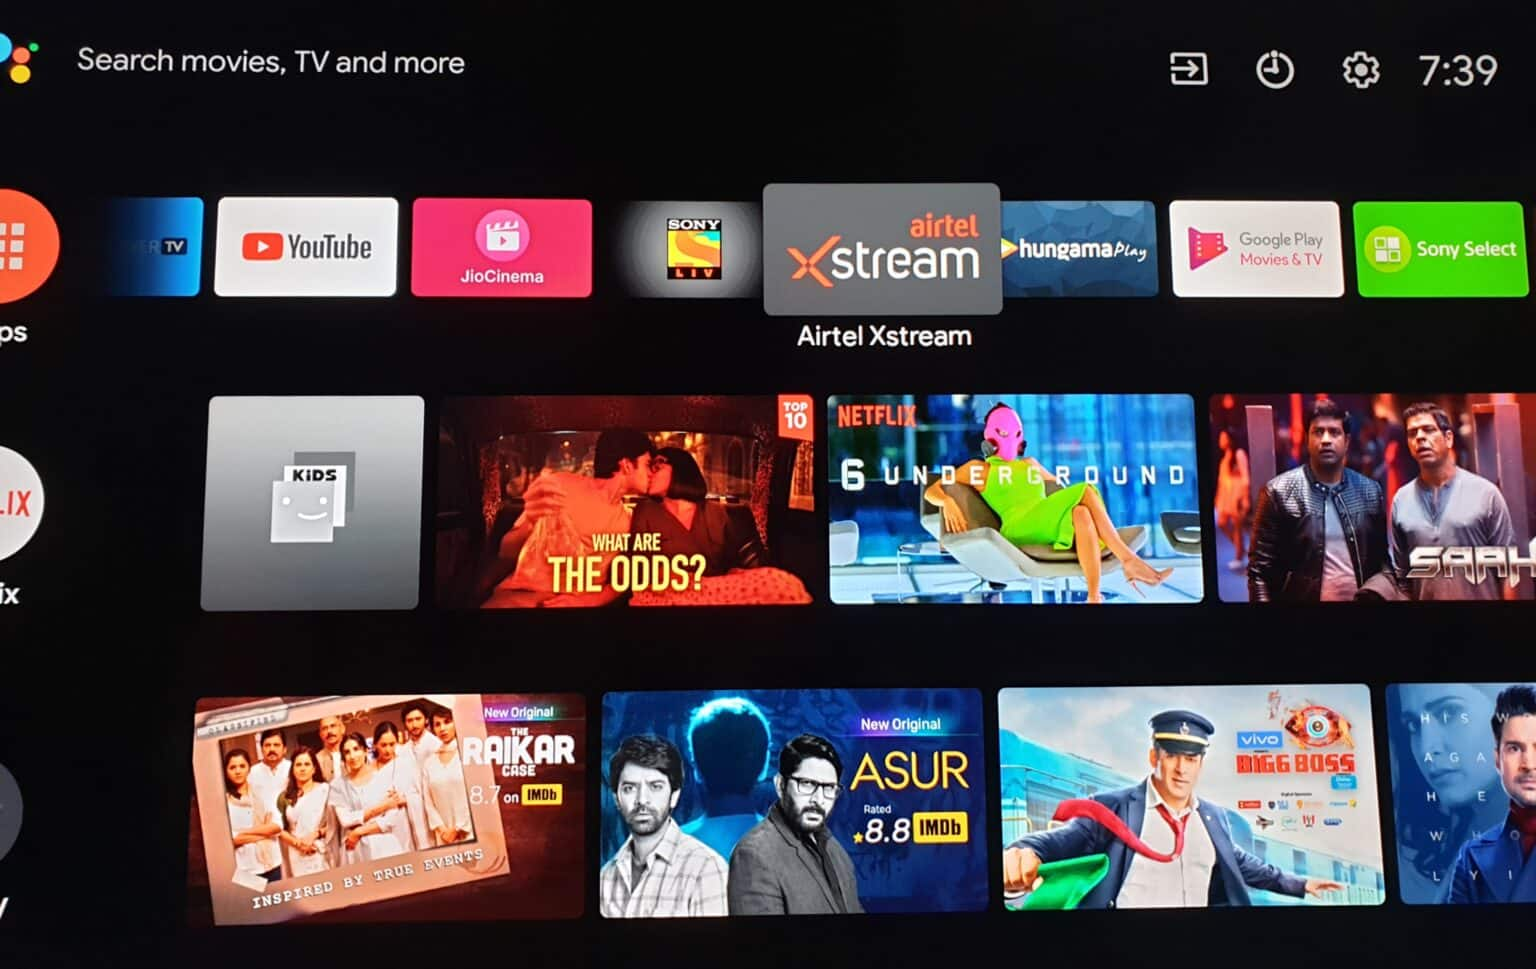 Now Watch Airtel XStream Movies and TV Shows on your big screen Android TV